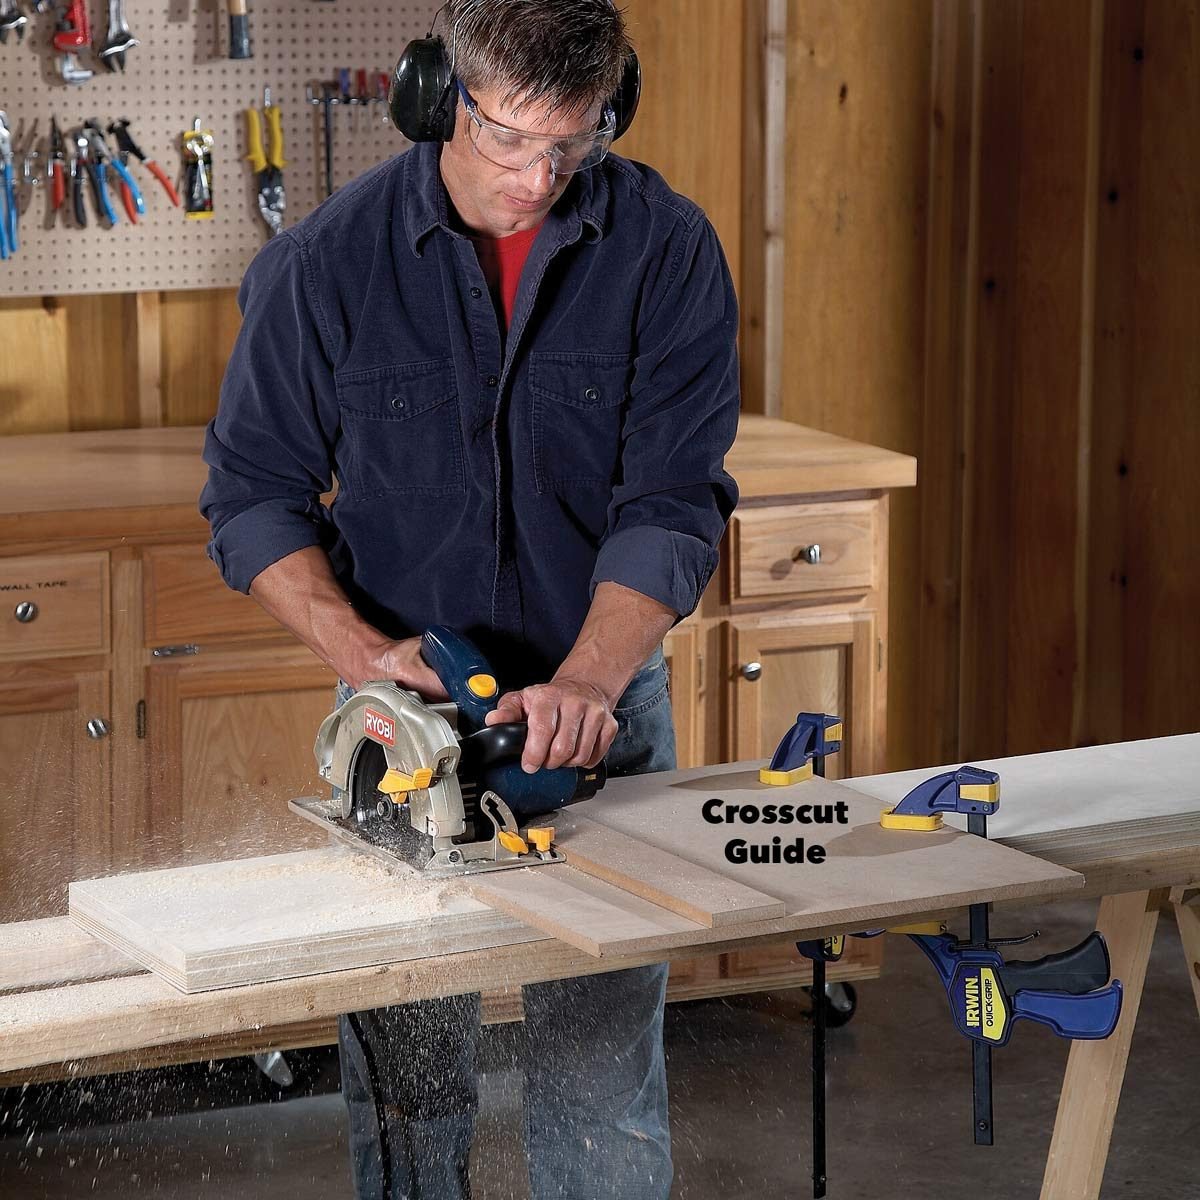 Sawing with a guide box shelves